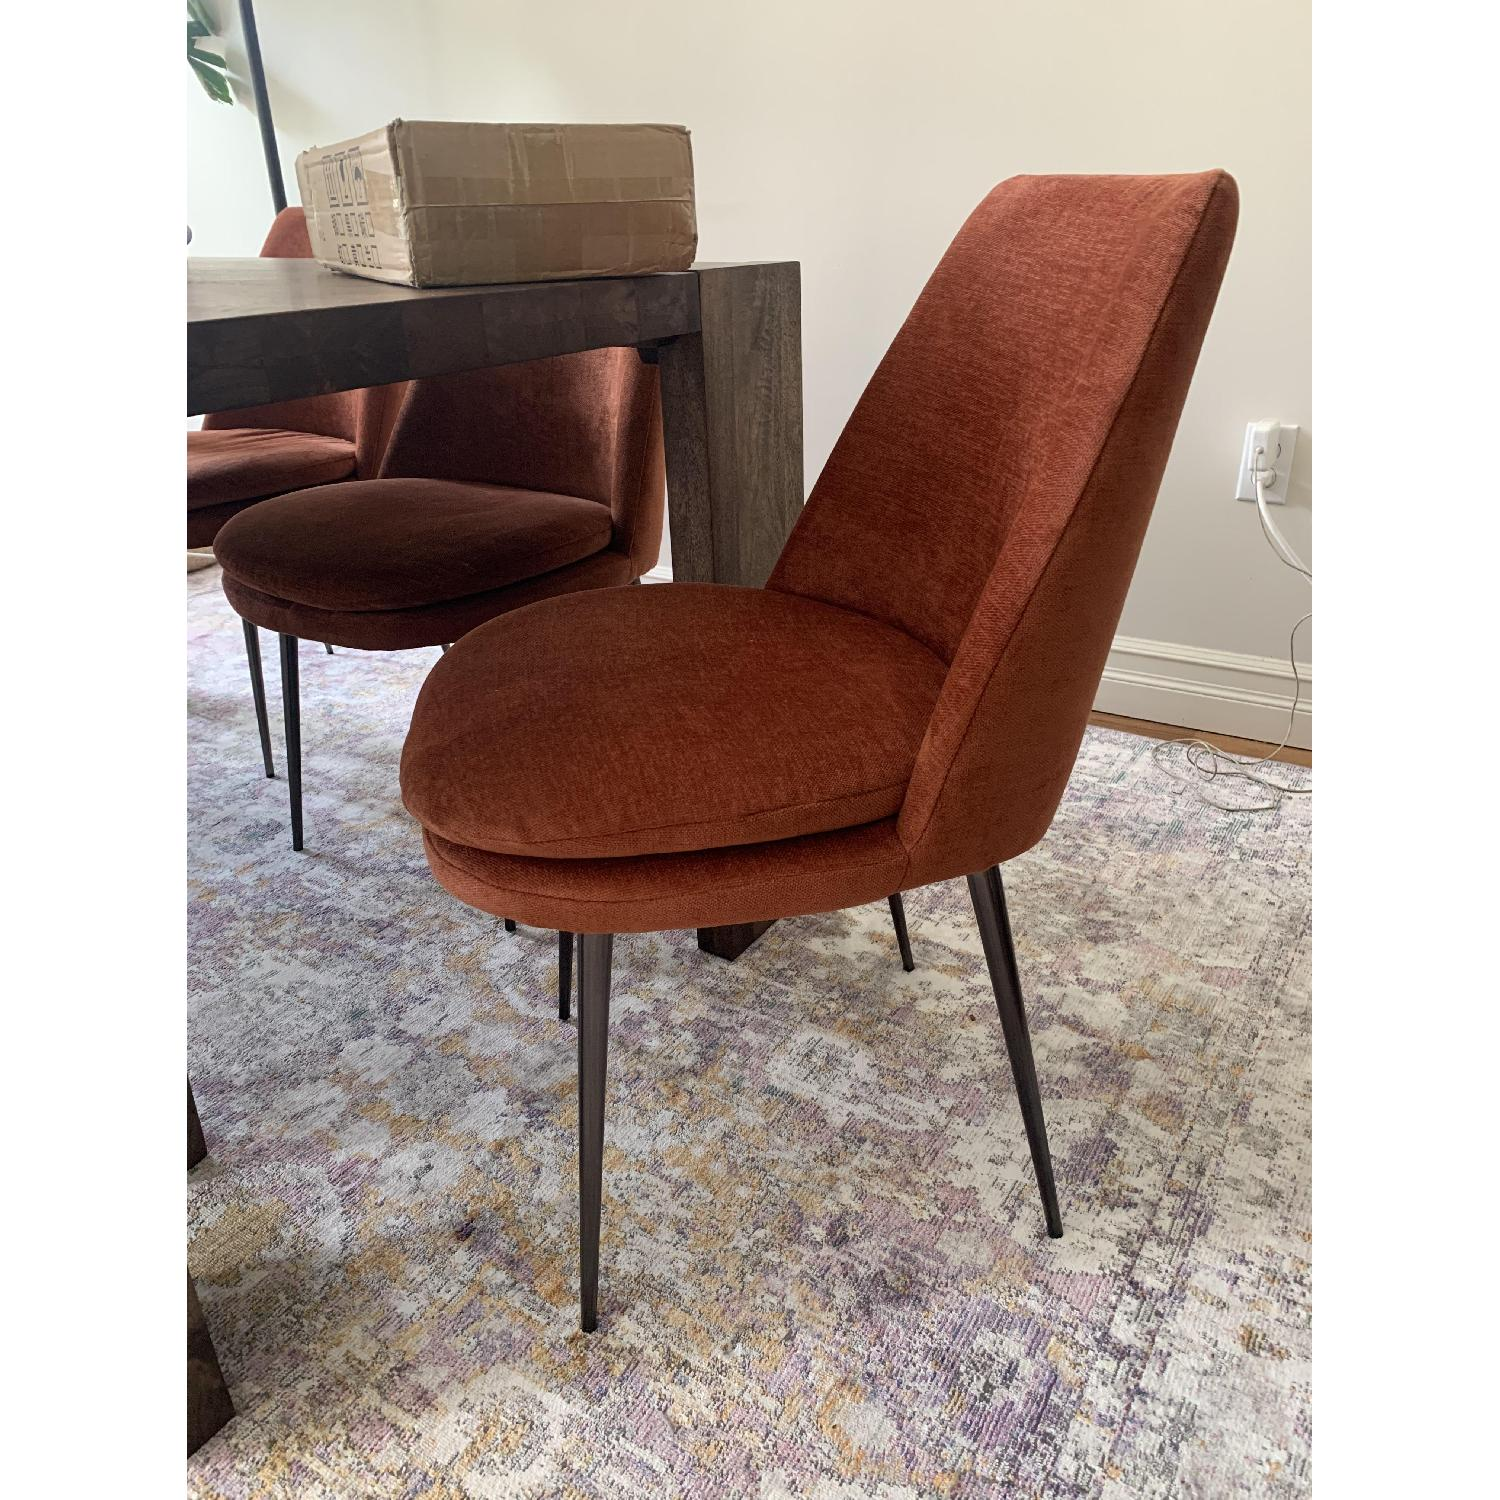 West Elm Distressed Velvet Dining Chairs - image-3